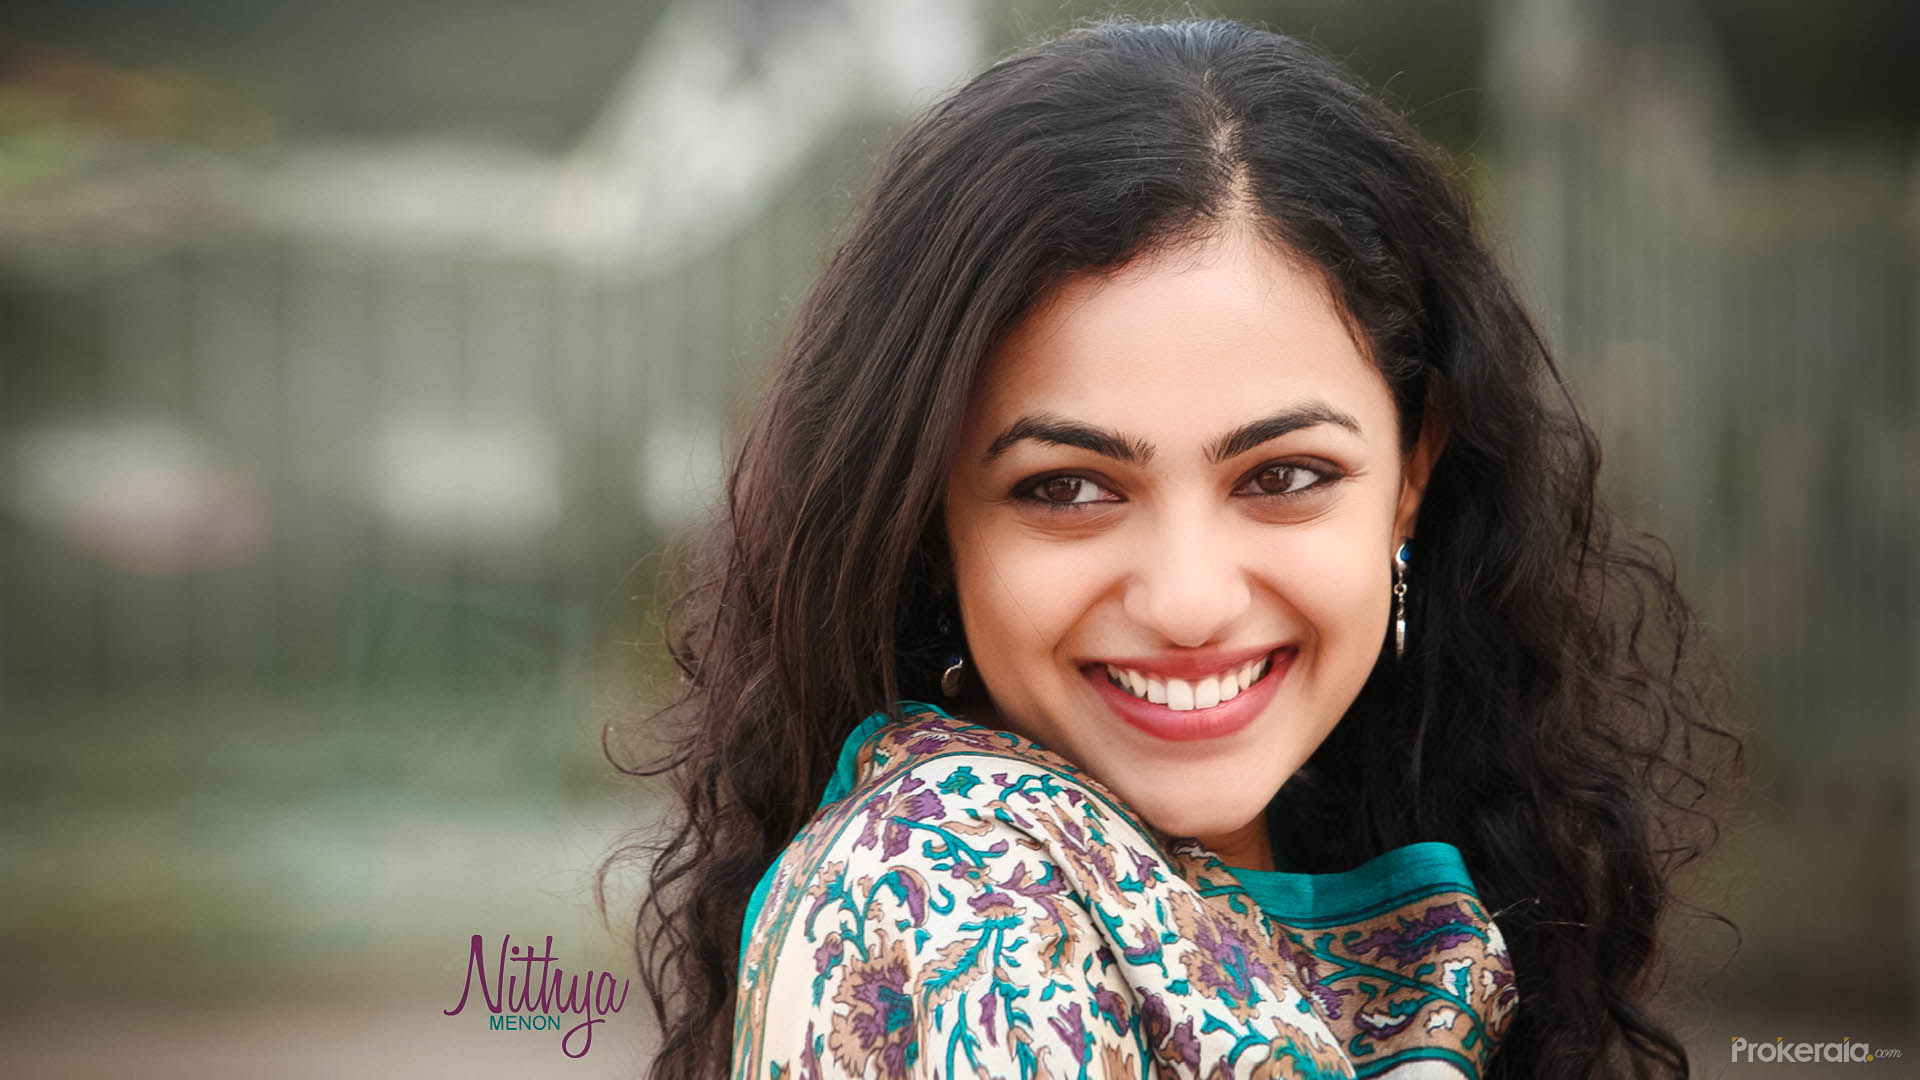 nithya menon hq wallpaper for download